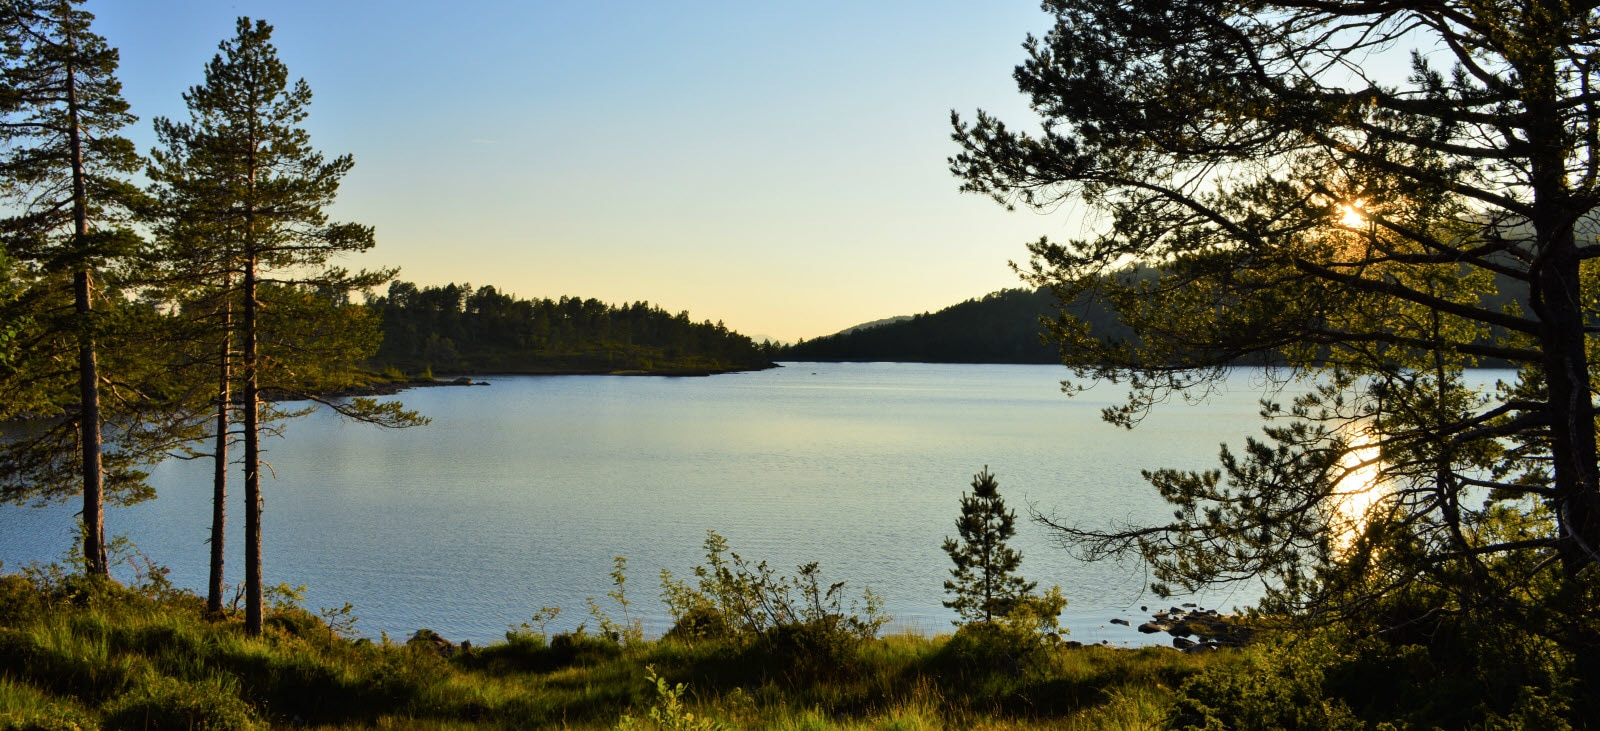 13260061-peaceful-norwegian-countryside_By_Paul_St.jpg